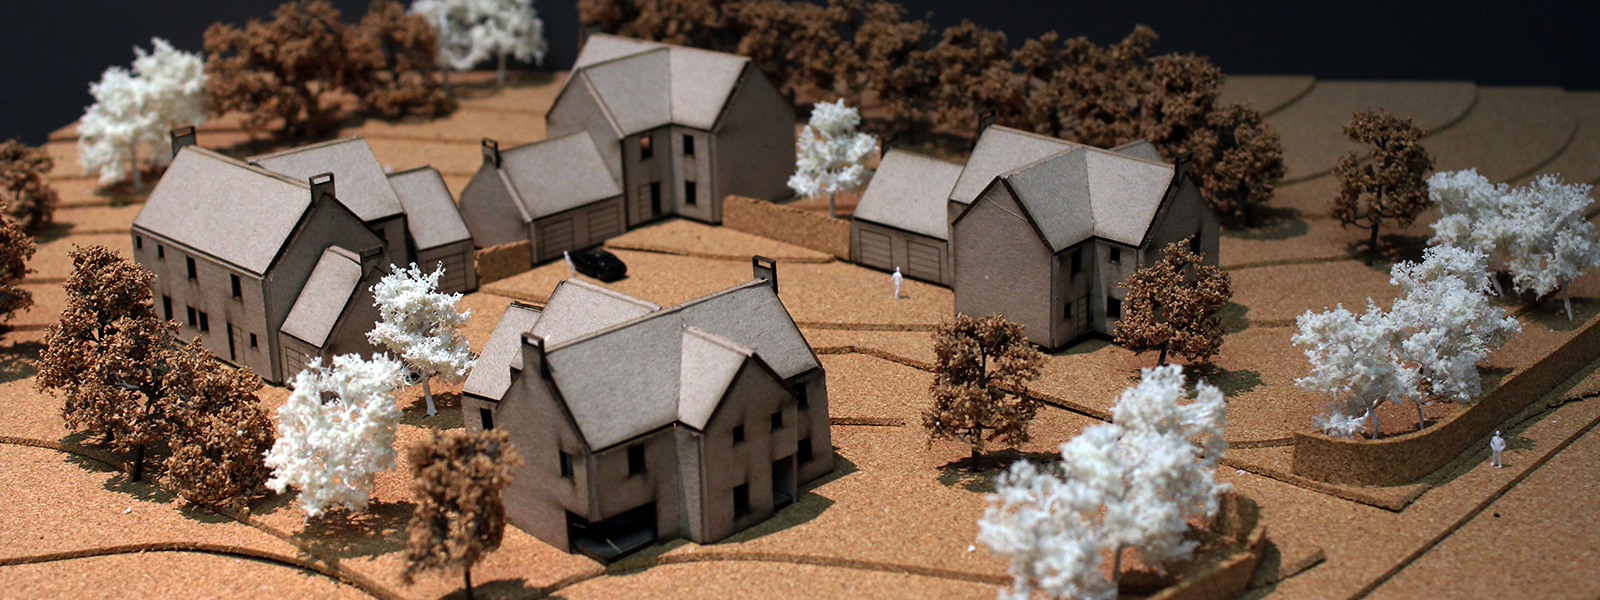 Tully Rural Development 3d model